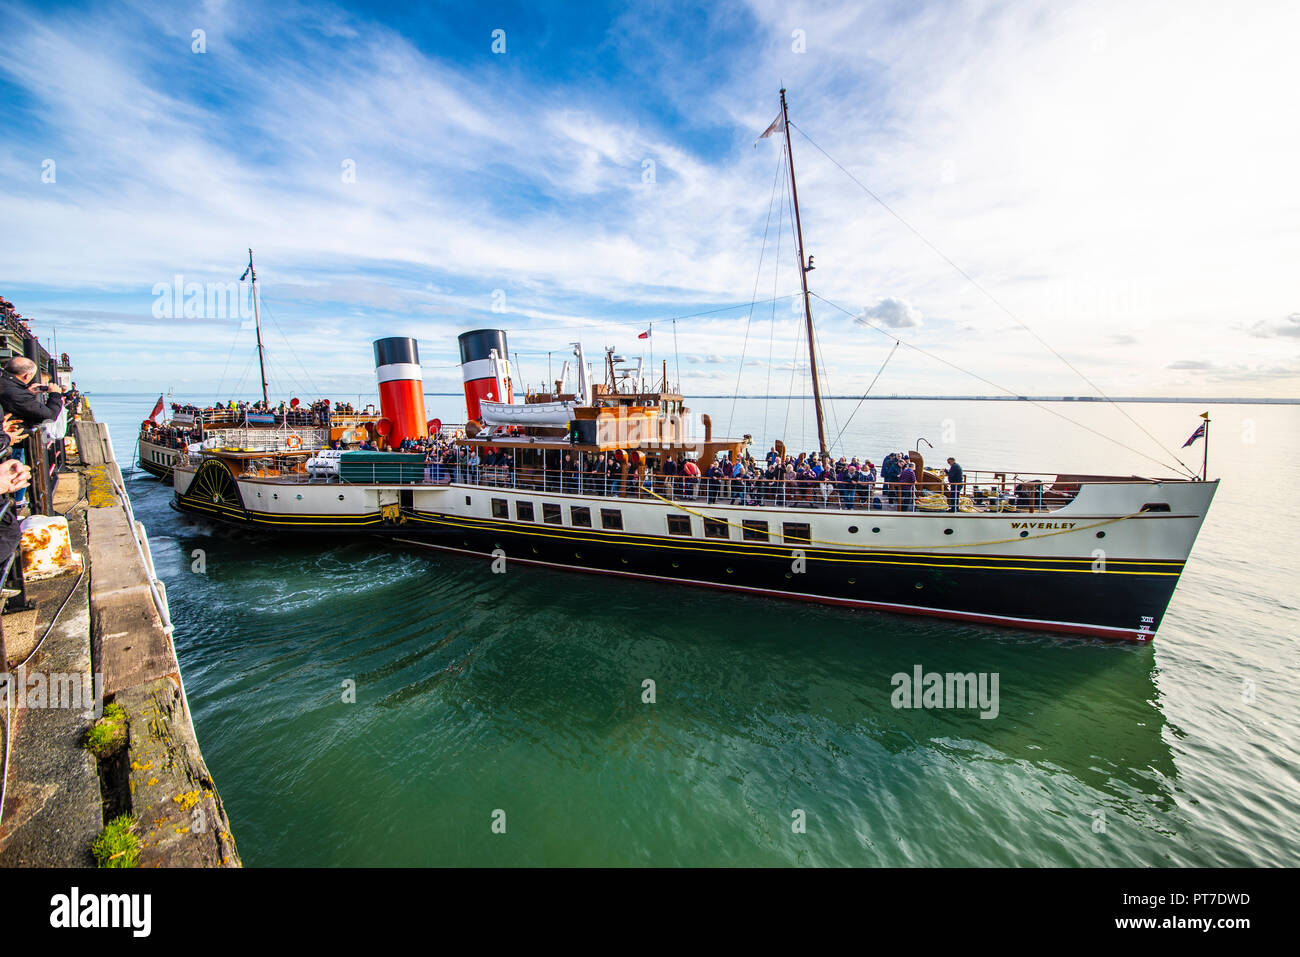 paddle-steamer-waverley-pulling-away-from-southend-pier-on-the-thames-estuary-with-passengers-heading-towards-london-space-for-copy-PT7DWD.jpg